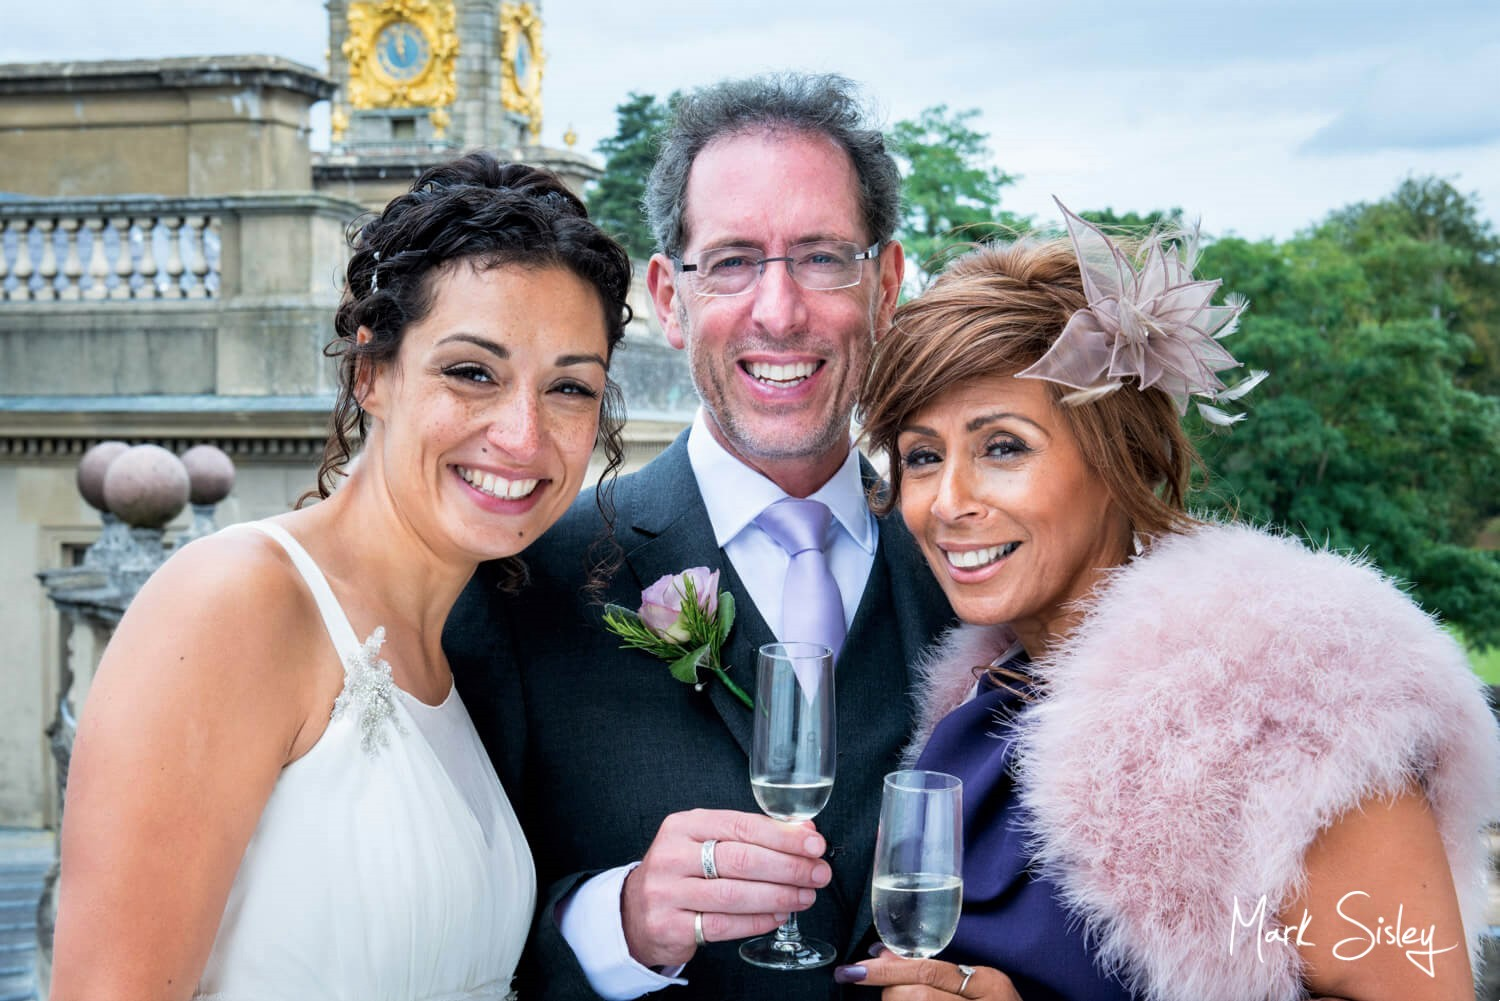 Cliveden House wedding photography blog - The bride with her parents